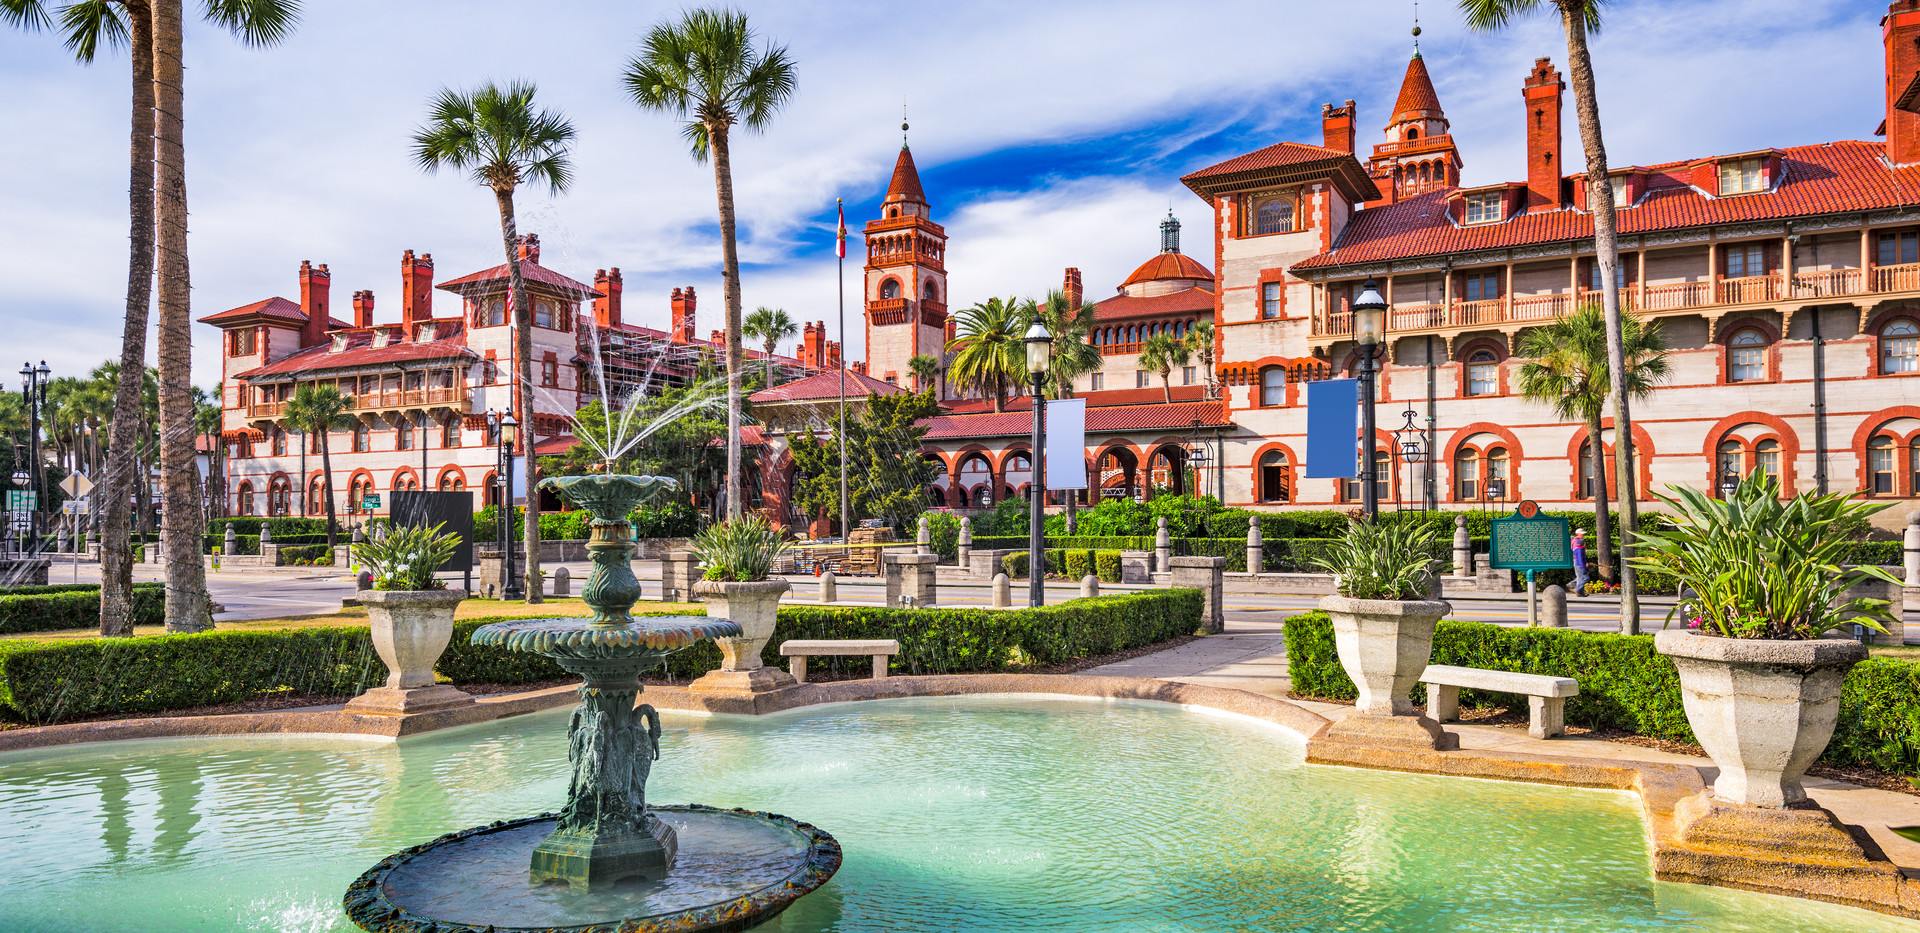 St. Augustine, Florida, USA town square